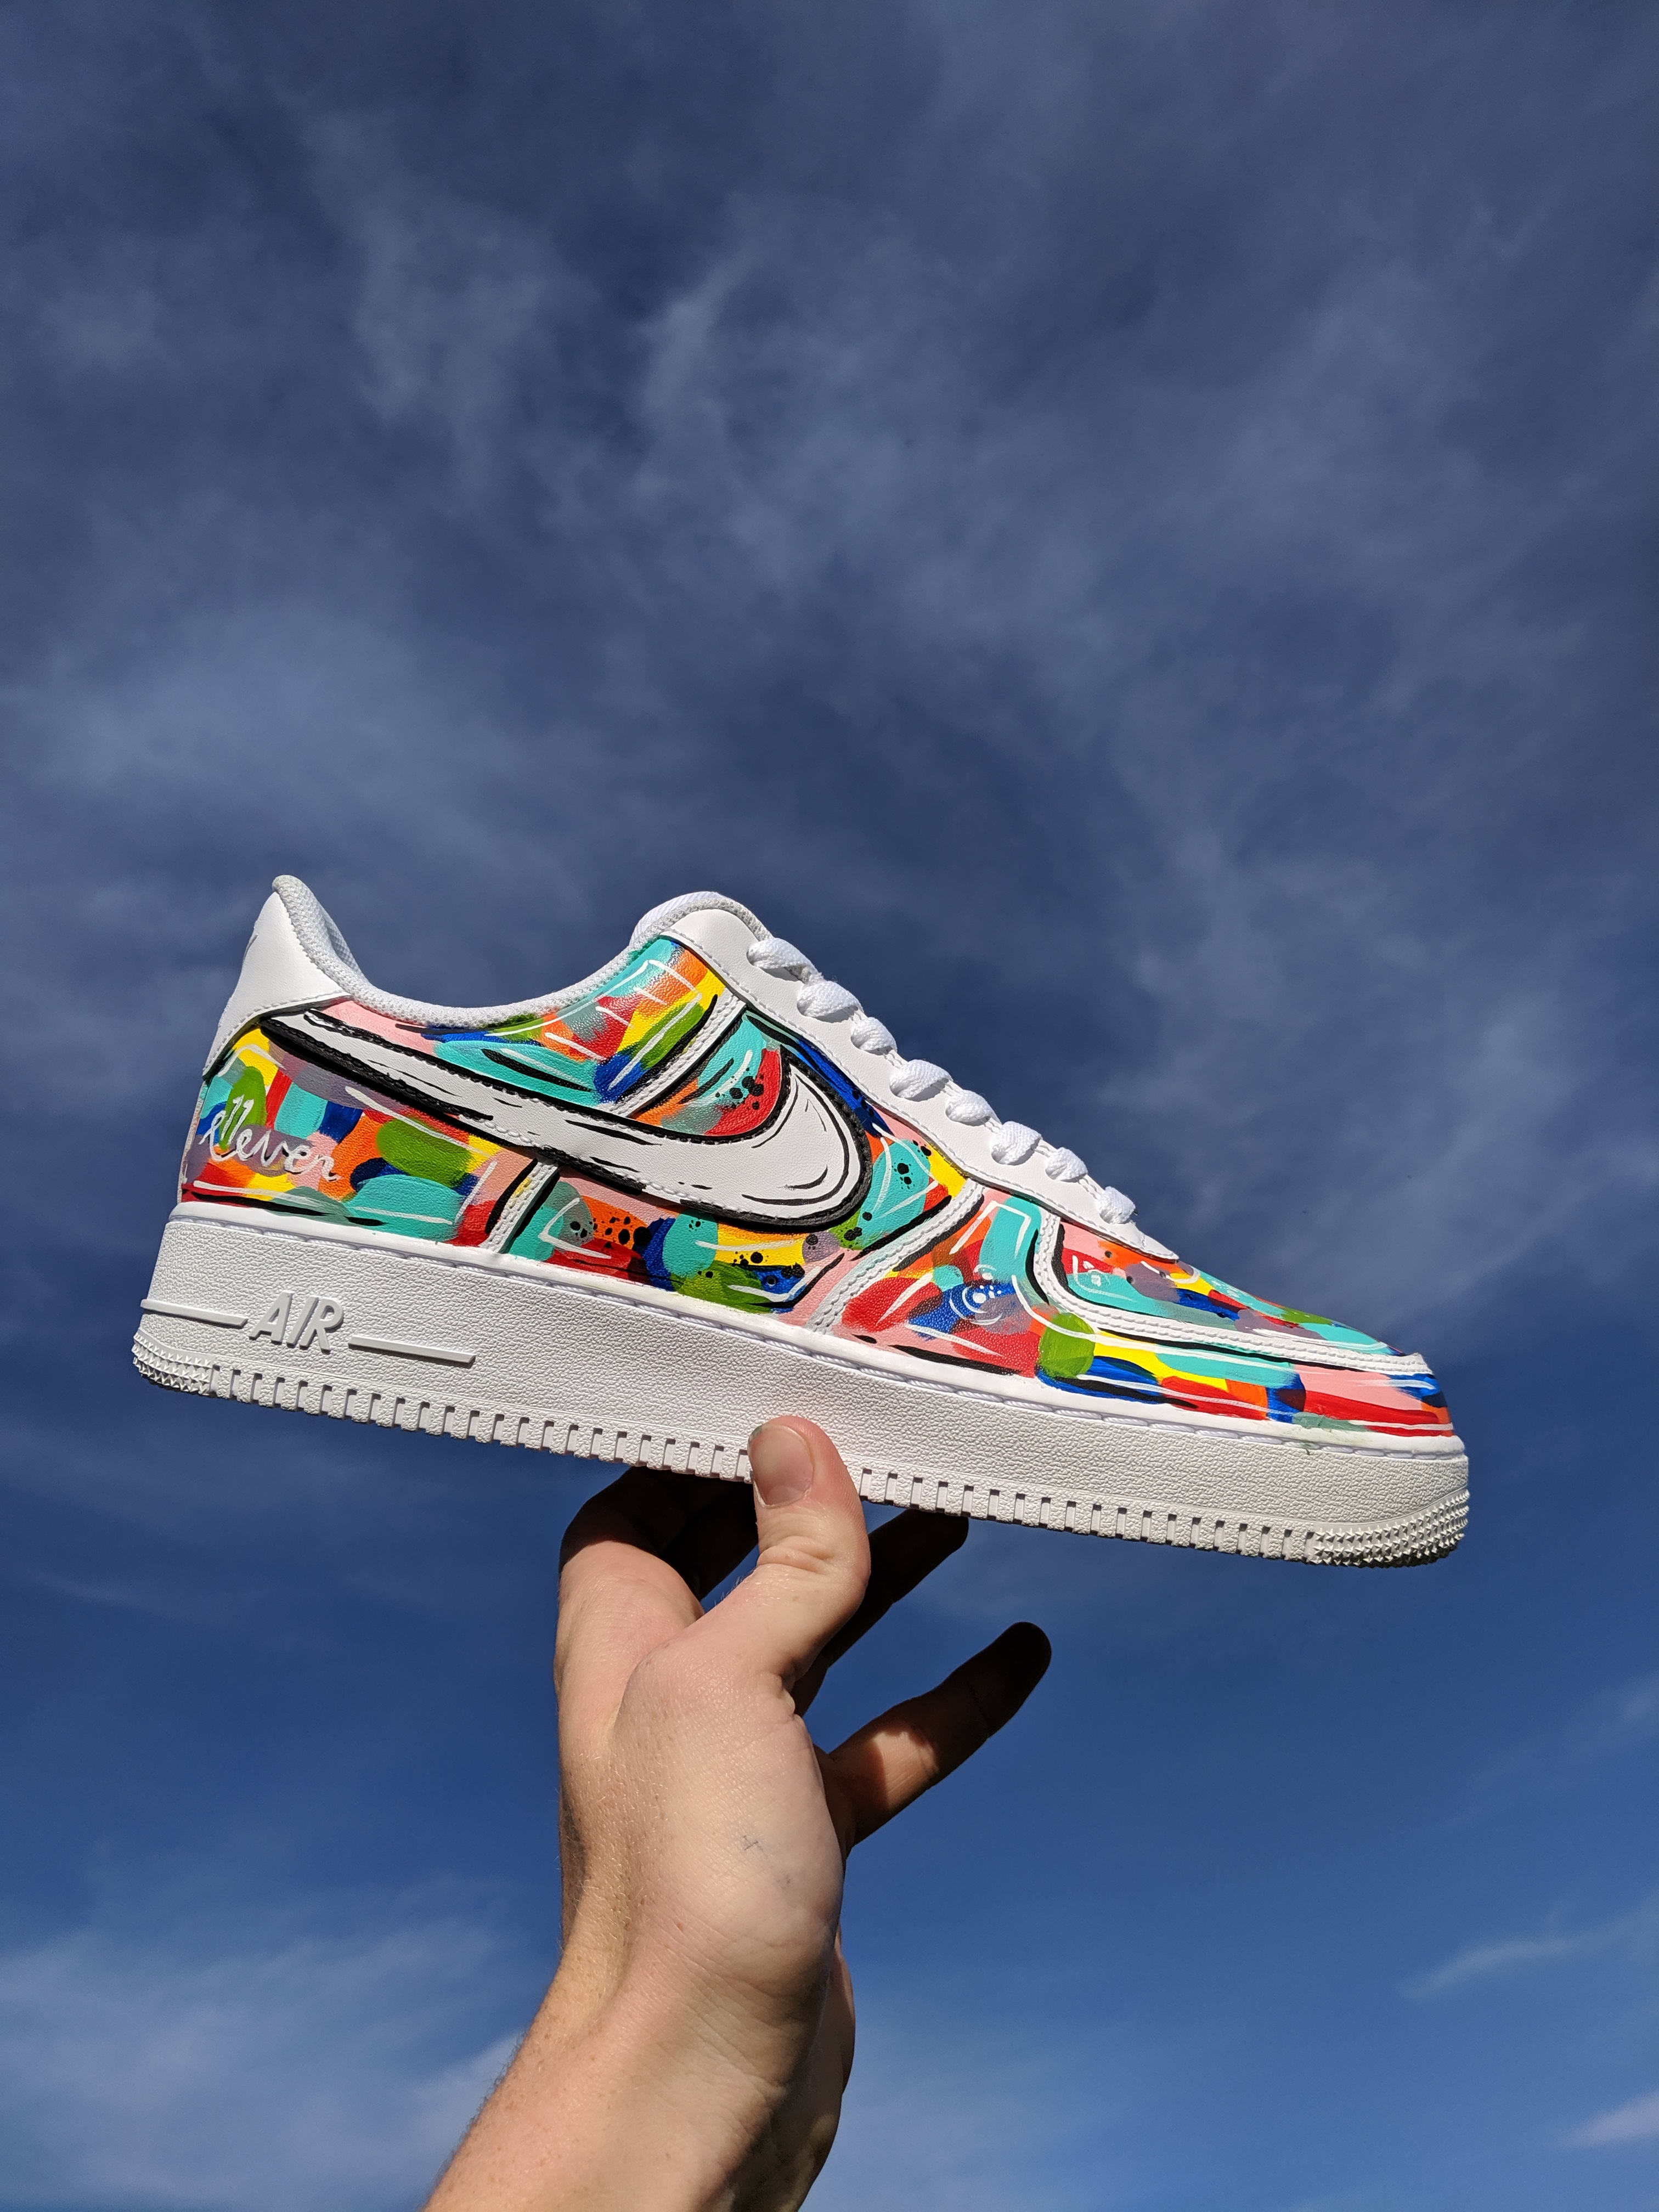 Customize and paint your shoes by